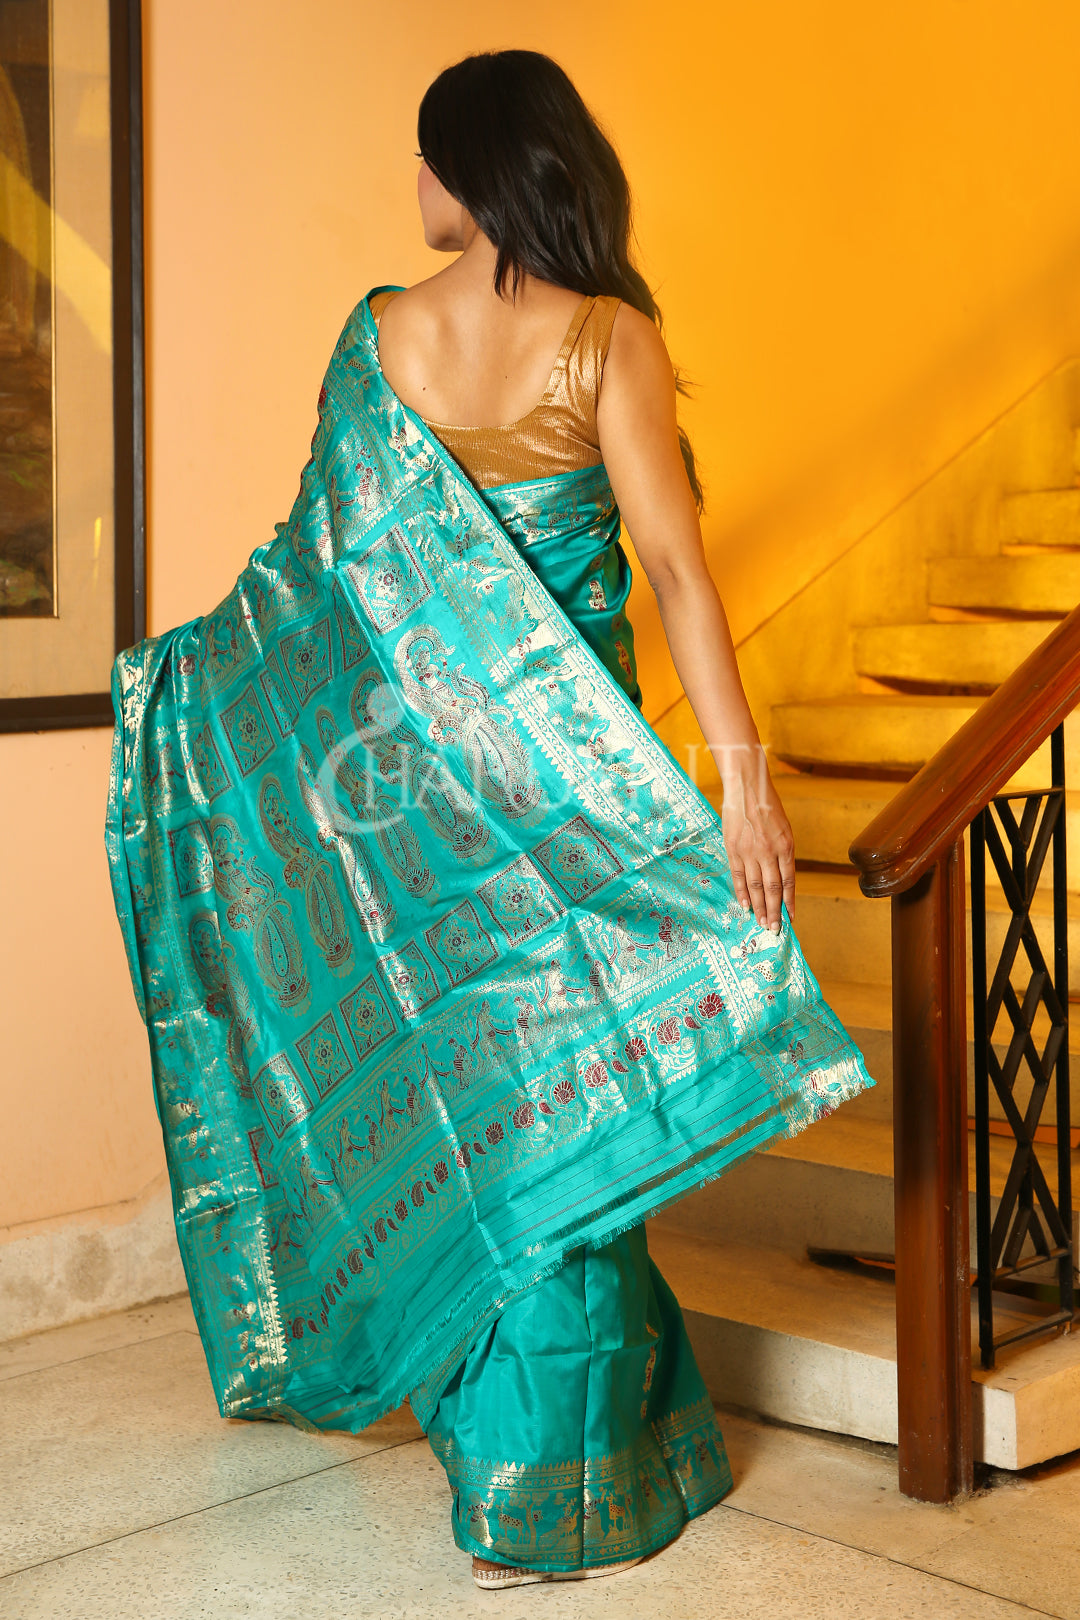 CYAN BLUE SWARNACHARI  SAREE WITH GOLDEN THREAD WEAVING AND PALLU